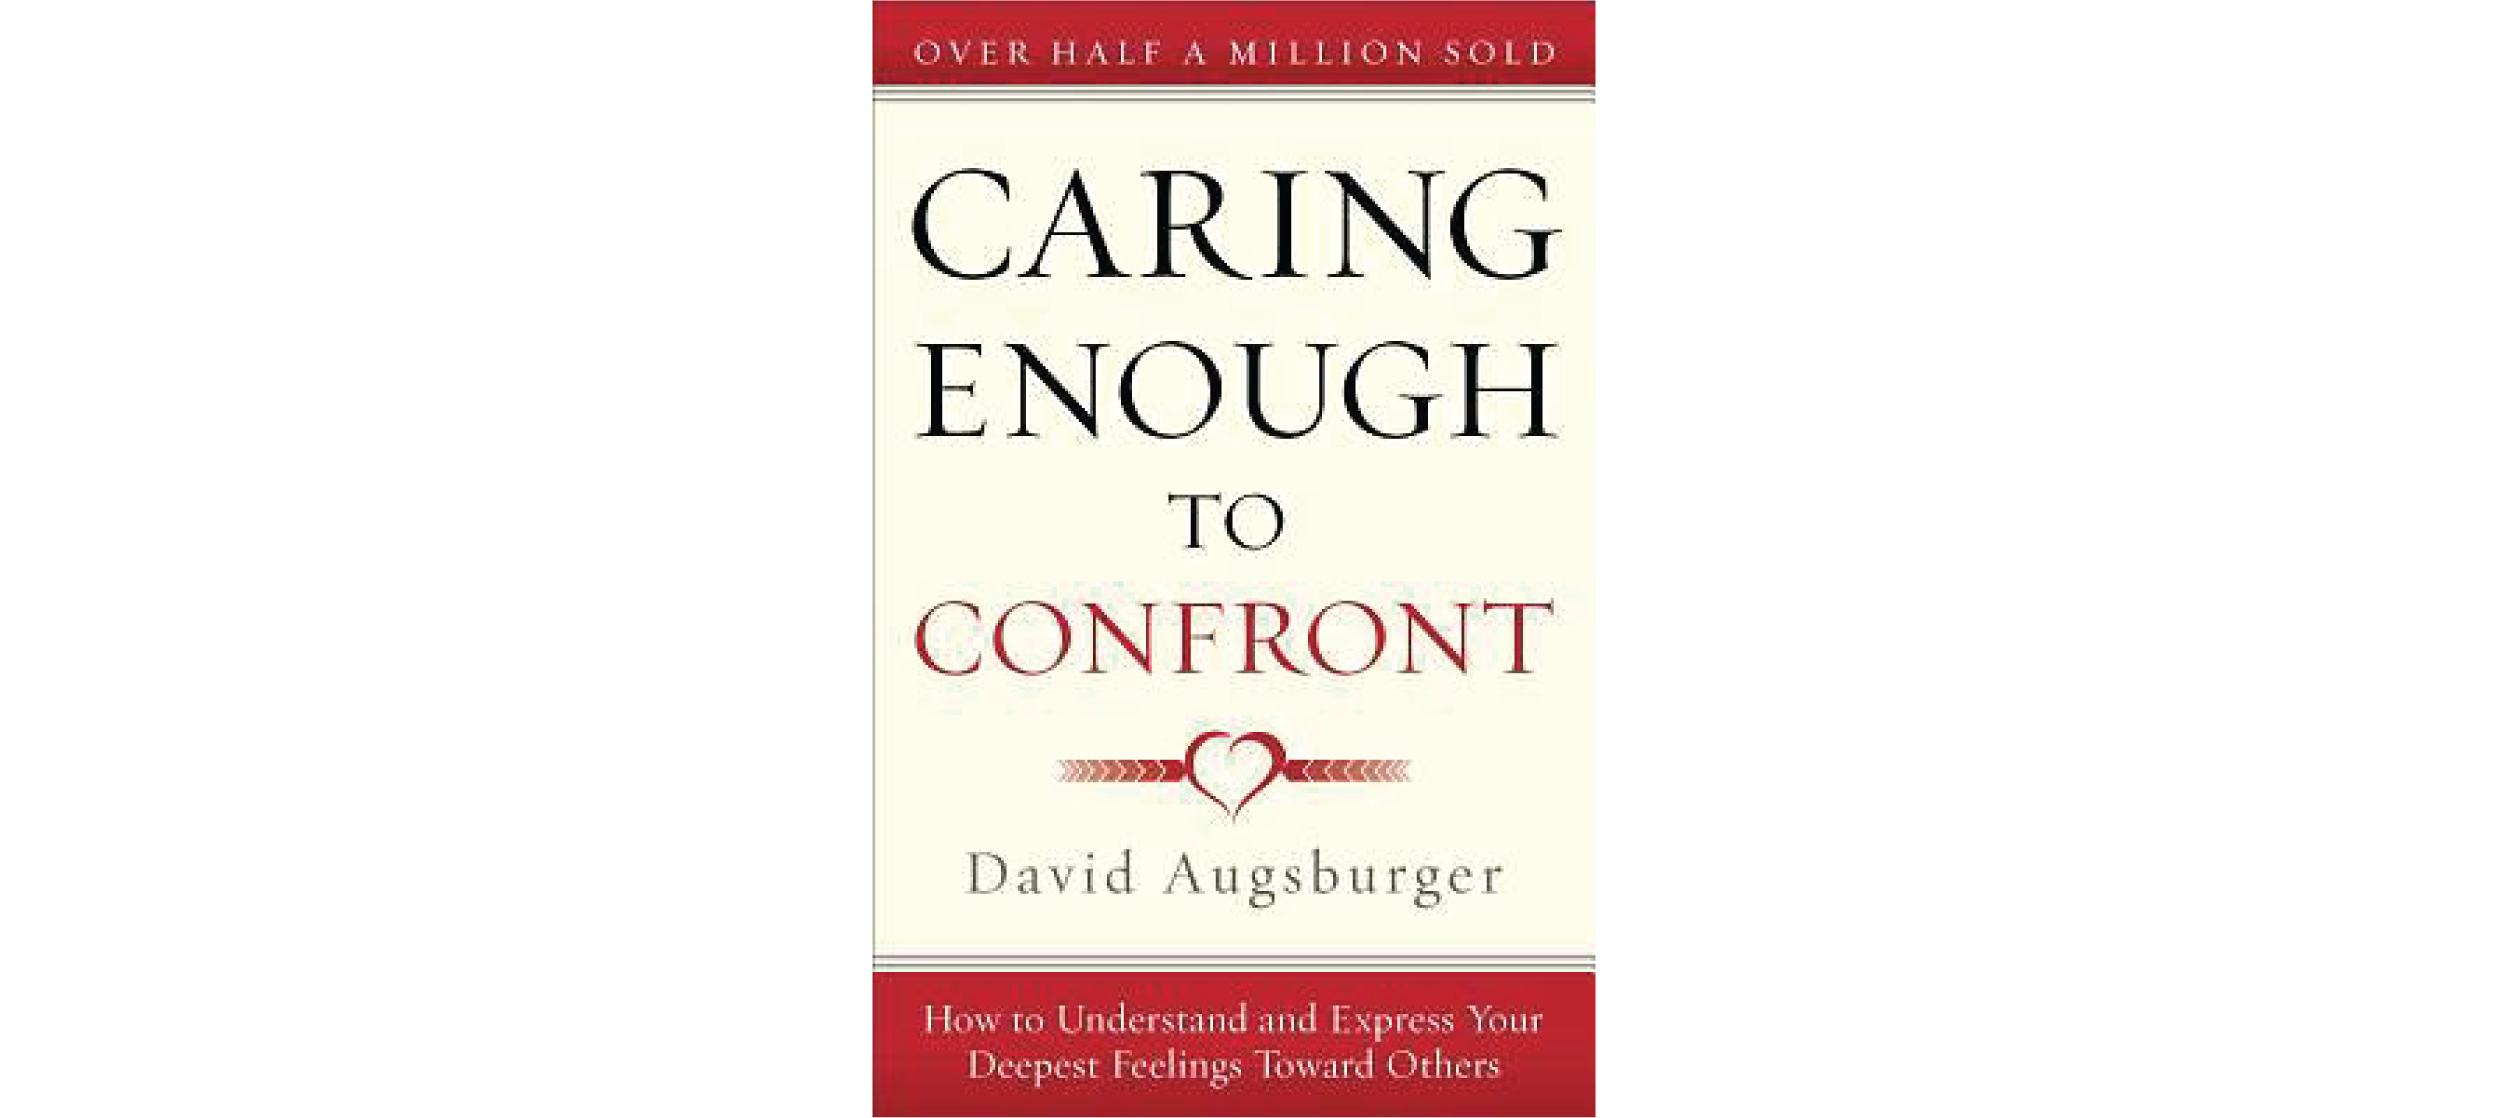 Caring Enough to Confront: How to Understand and Express Your Deepest Feelings Toward Others by David Augsburger